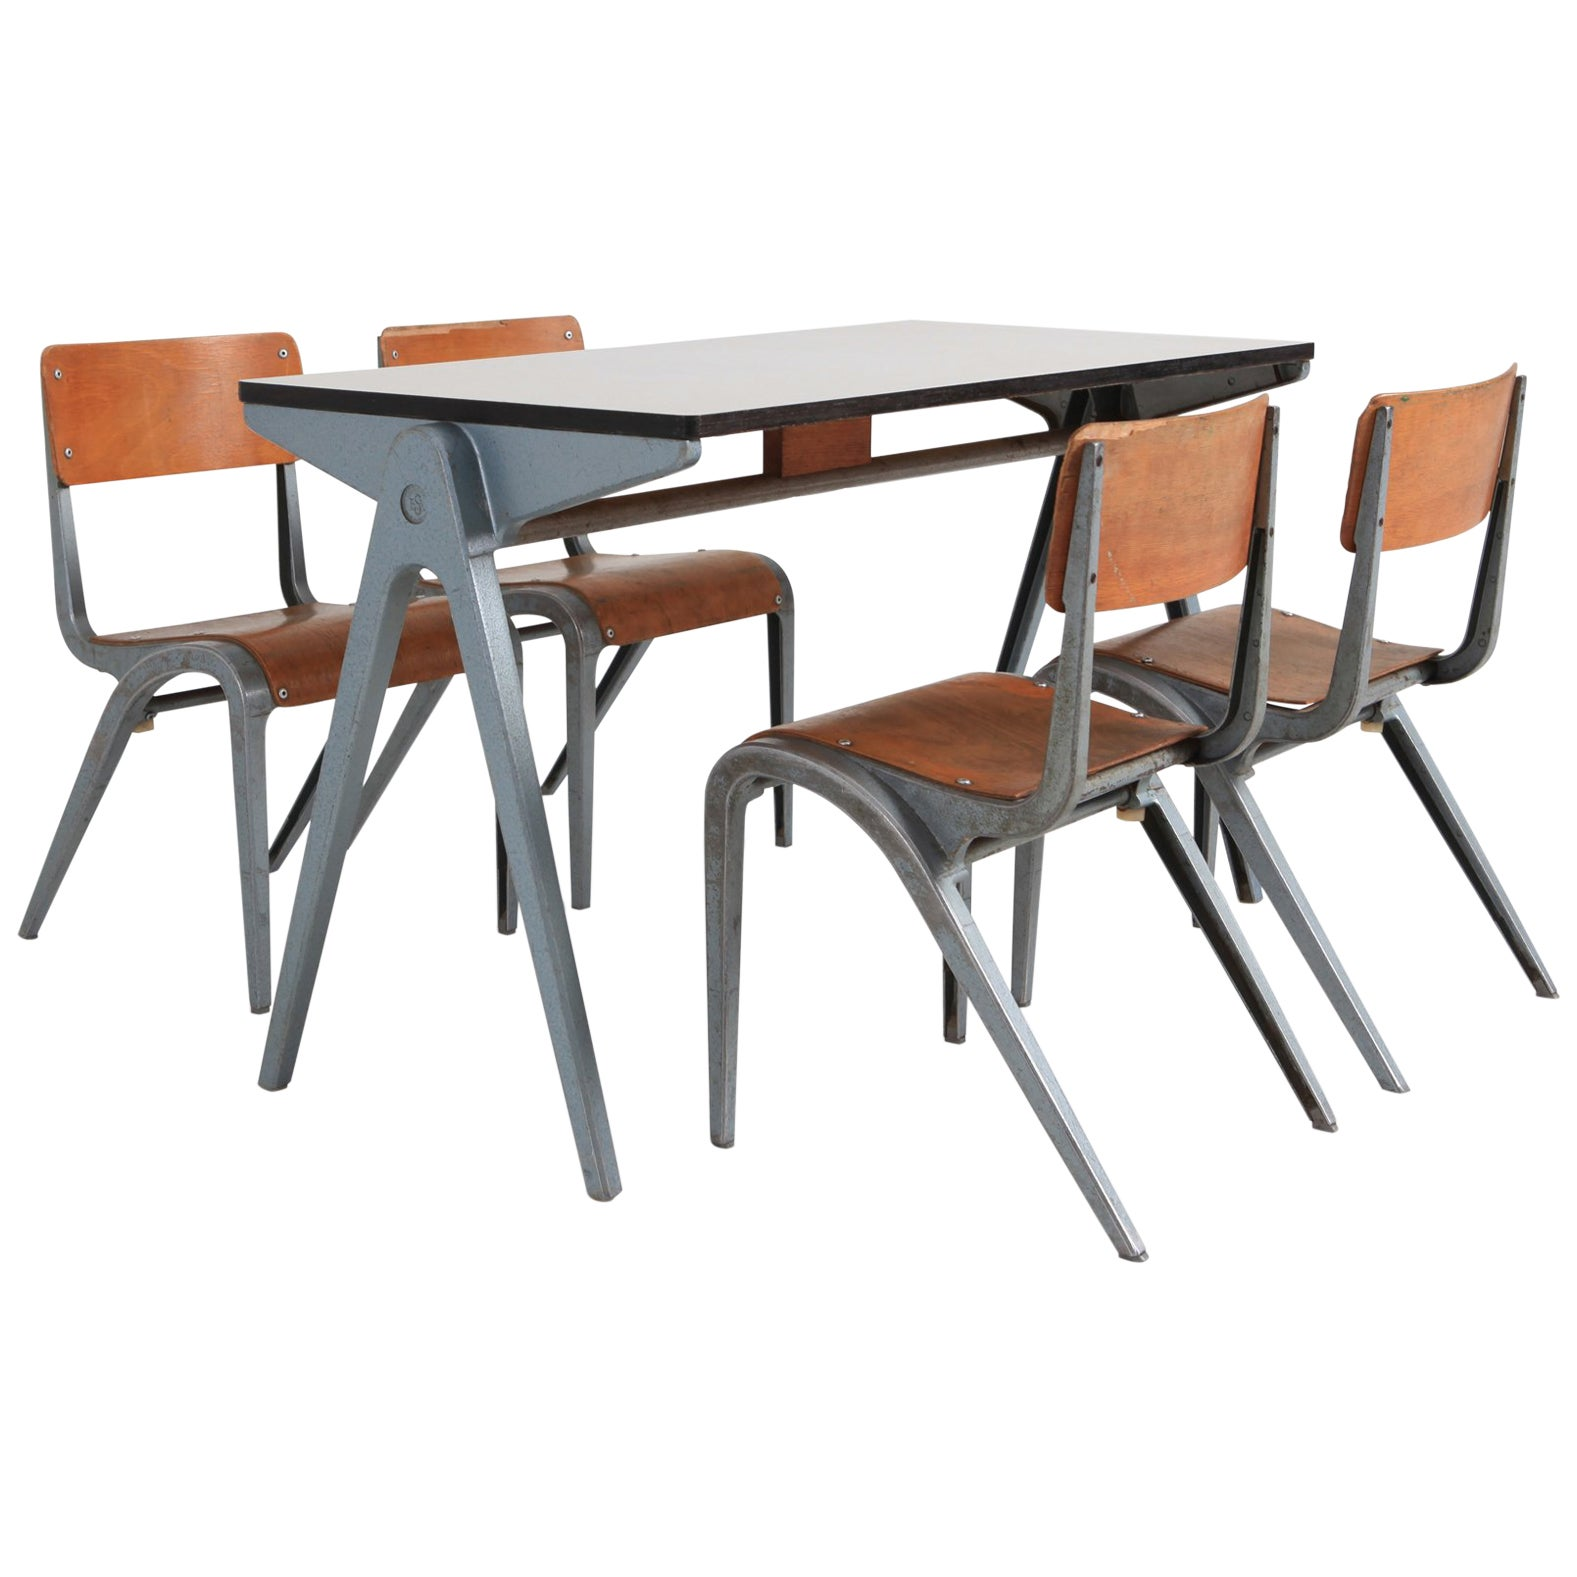 Modern Table And Chairs Industrial Writing Desk Table With Chairs For Kids By James Leonard For Esavian